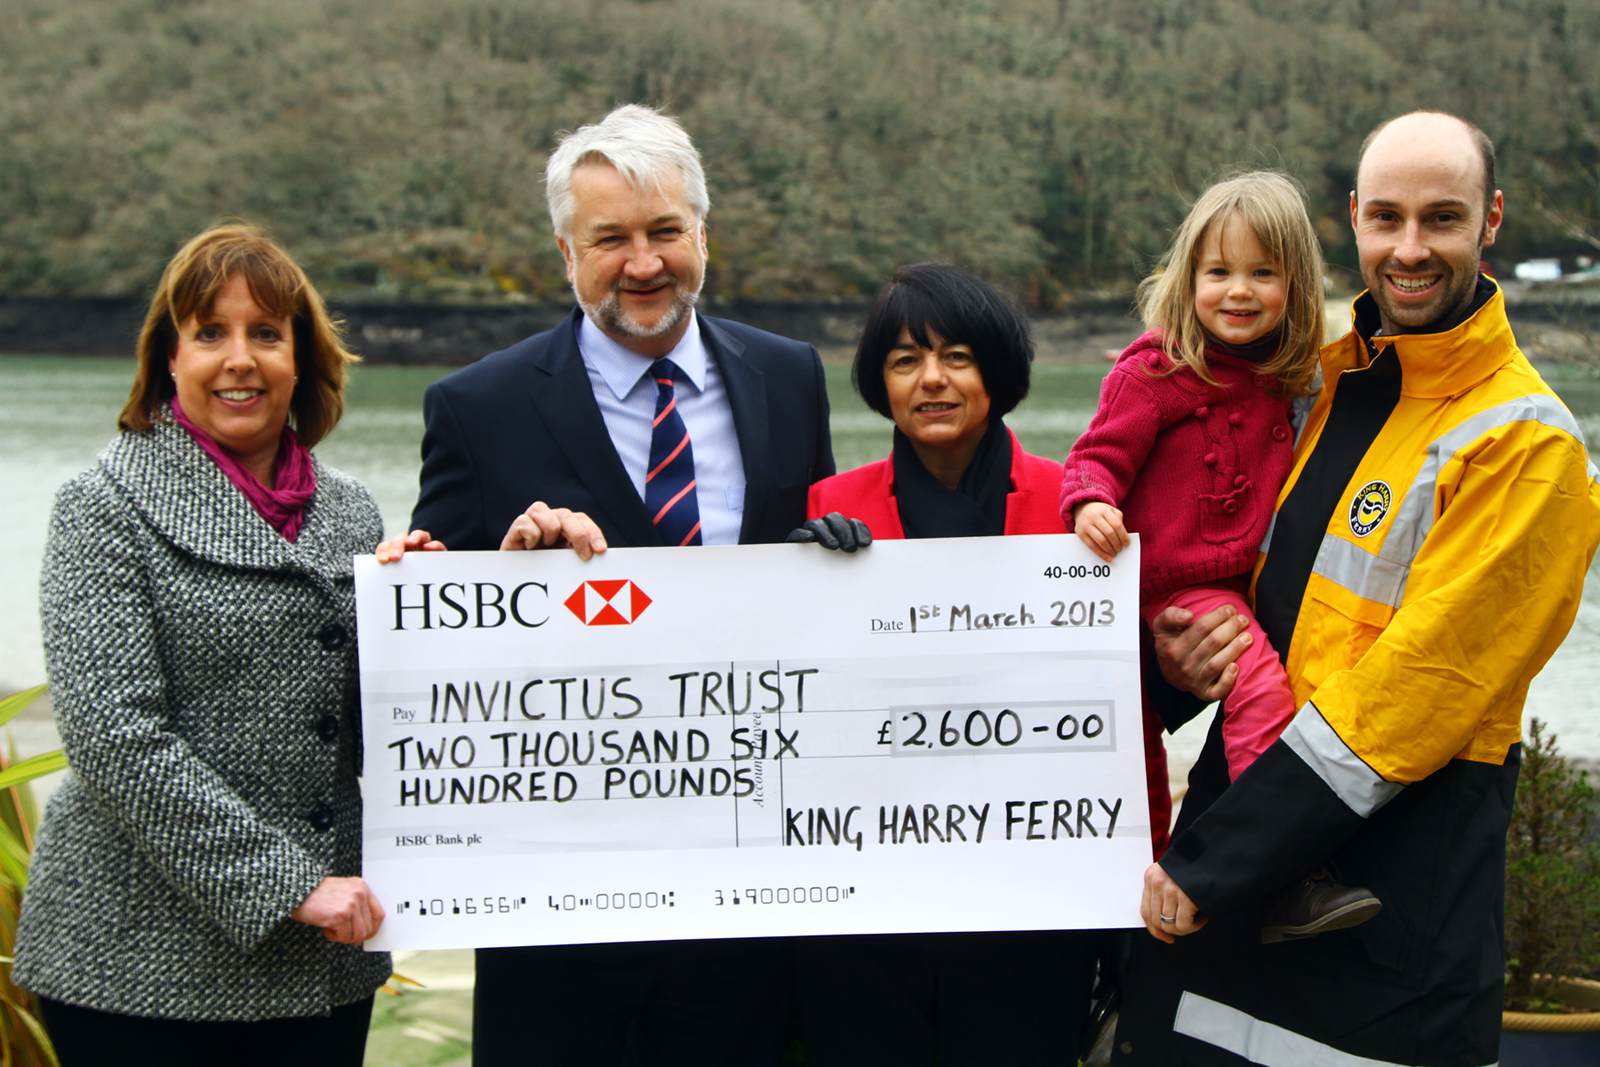 Handing over the donation from the King Harry Ferry's foot and cycle passengers are (L-R): Beverley Hayward (King Harry Ferry), Steve and Sharon Cowburn (Invictus Trust), Garrick Royle (King Harry Ferries' operations manager) and his daughter, Molly.